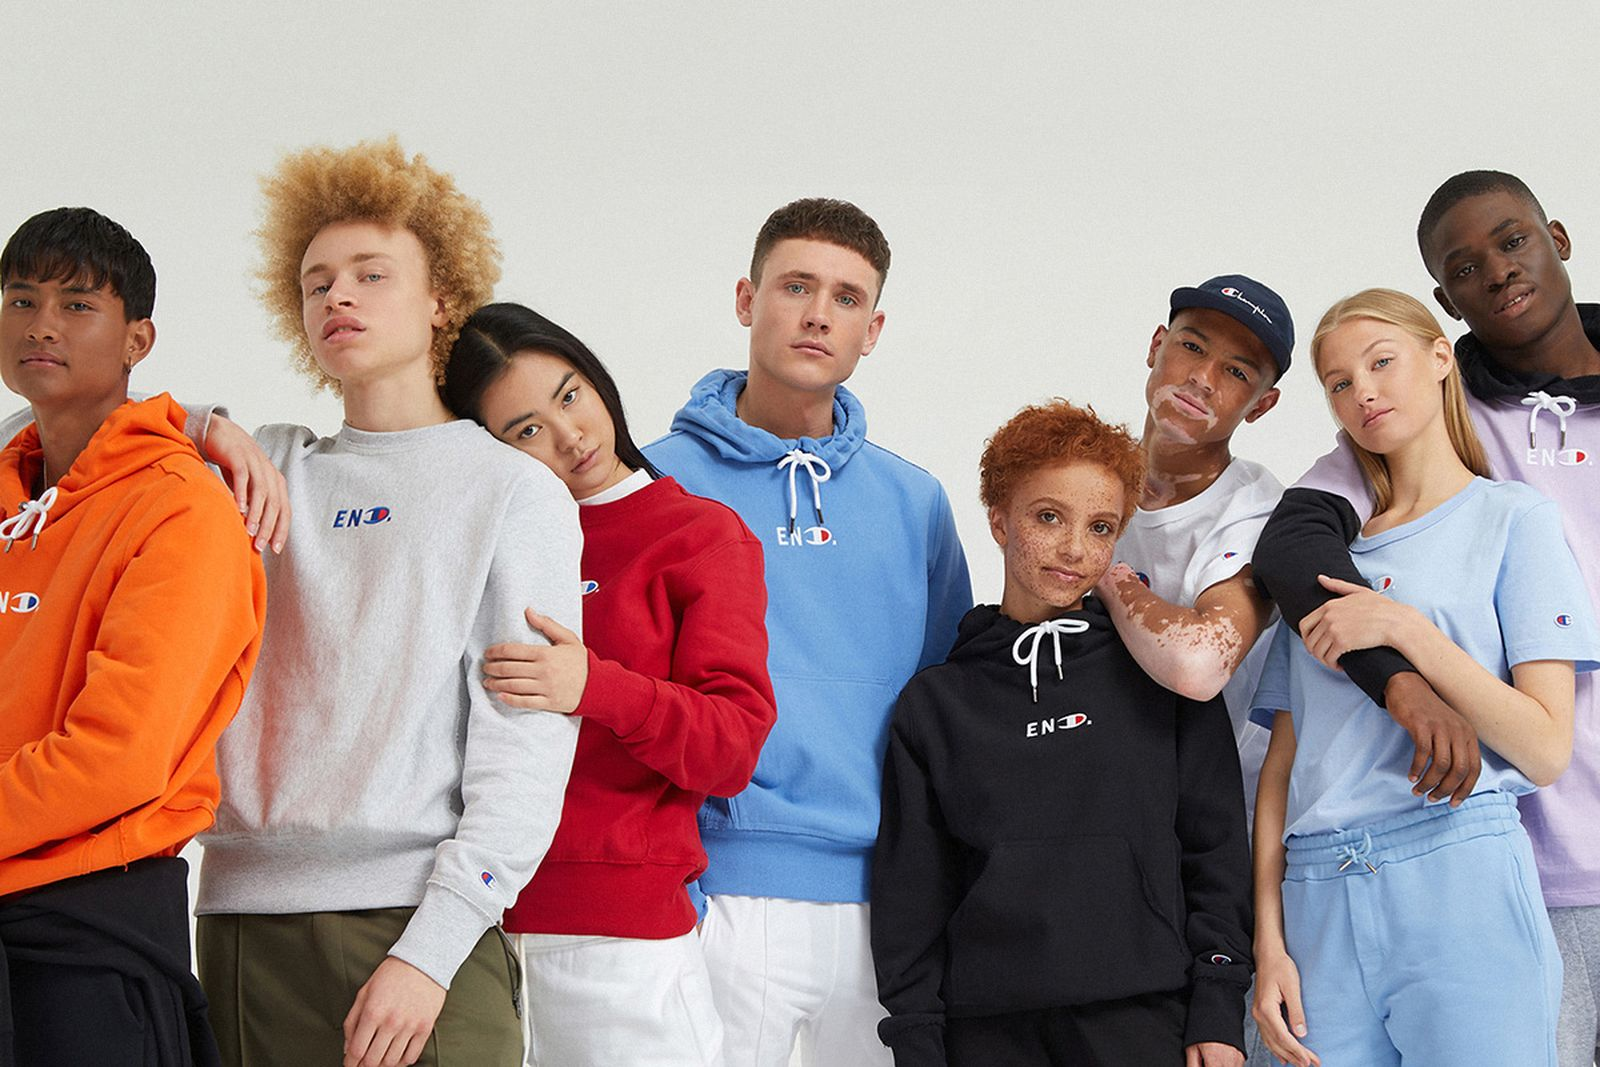 as champion turns 100 this year explore its past shop its recent history here main02 Supreme